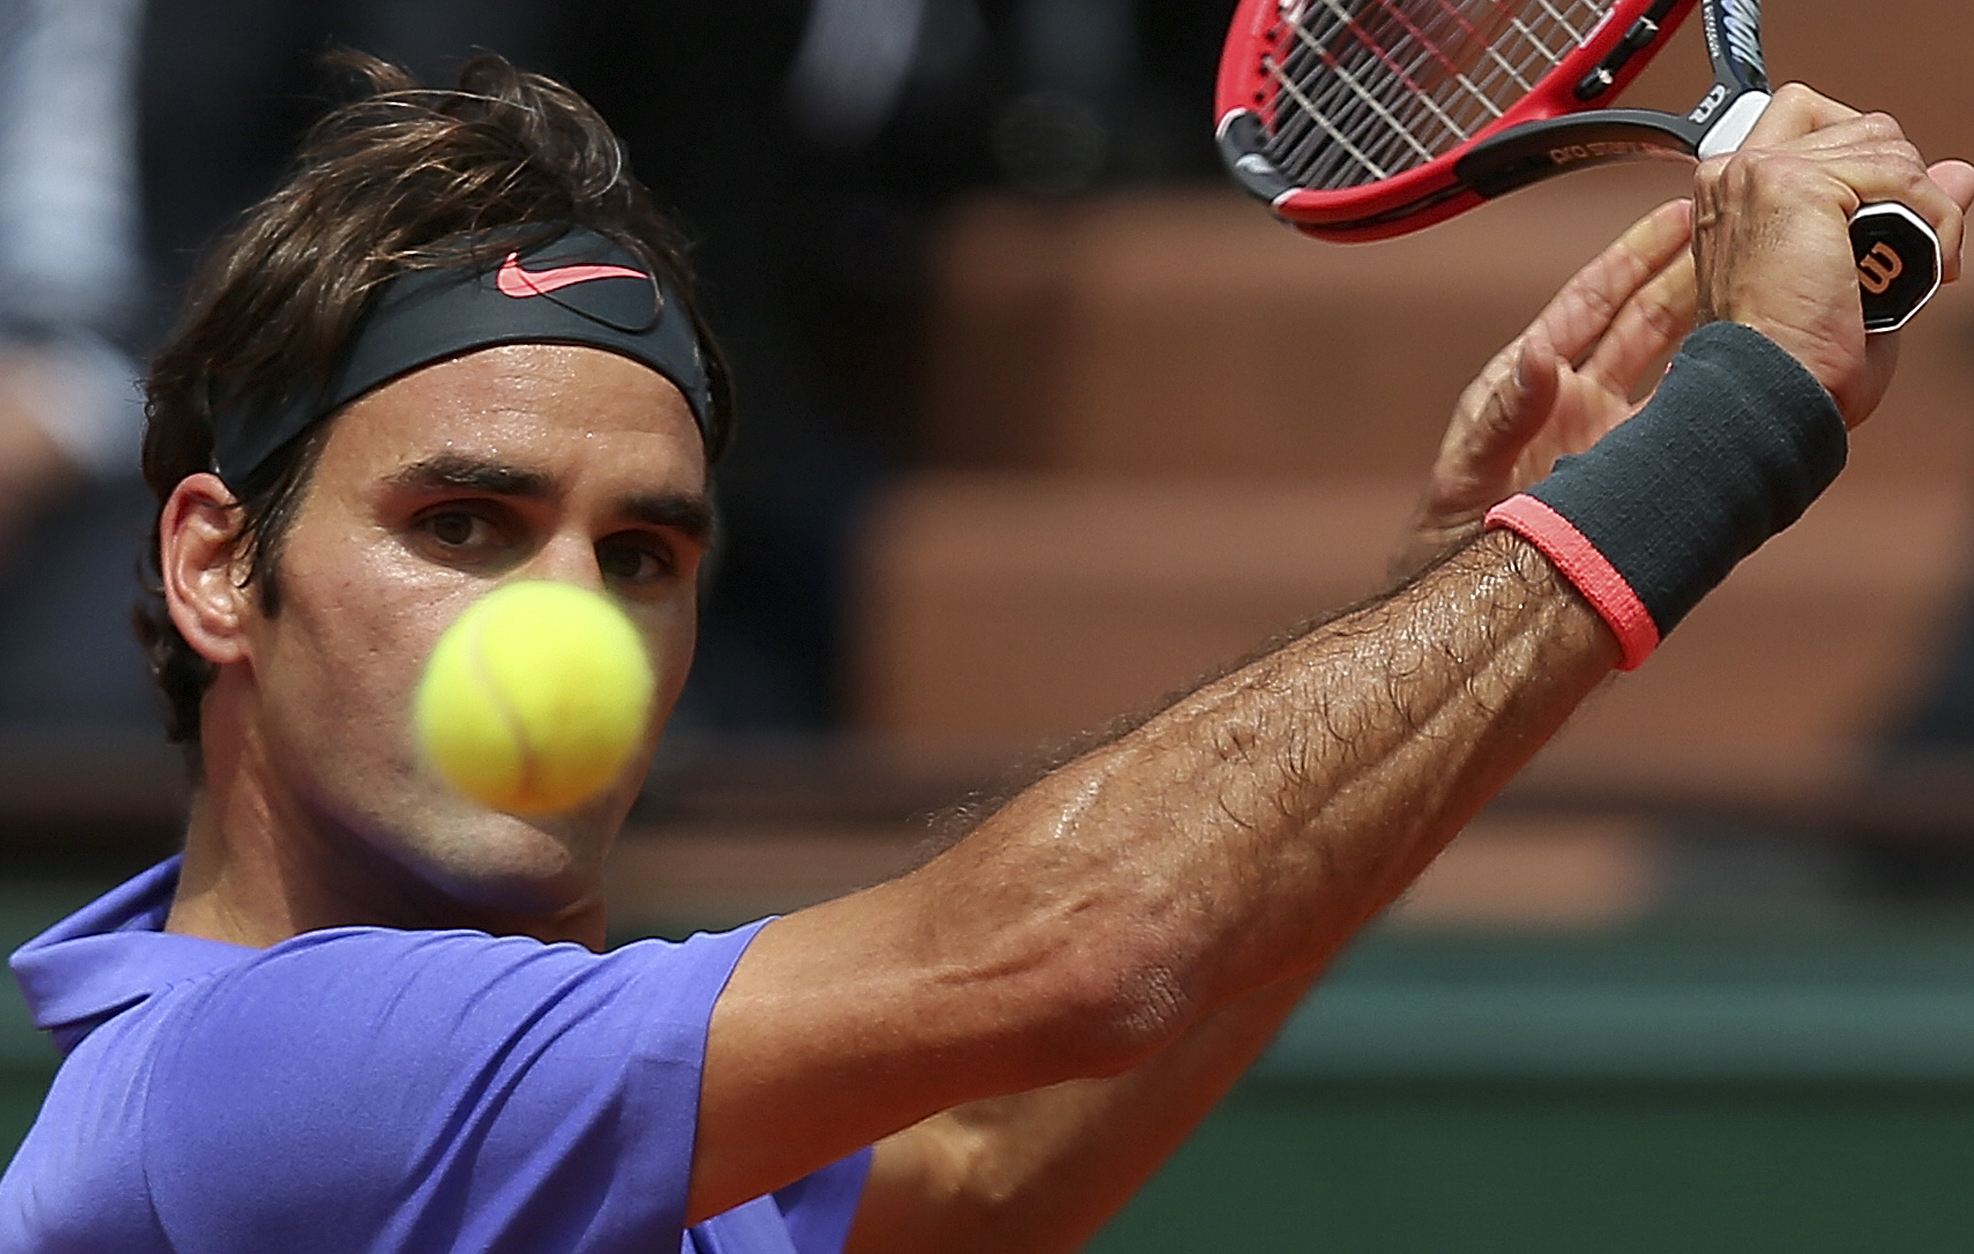 Switzerland's Roger Federer eyes the ball as he plays France's Gael Monfils during their fourth round match of the French Open tennis tournament at the Roland Garros stadium, Monday, June 1, 2015 in Paris. Federer won 6-3, 4-6, 6-4, 6-1. (AP Photo/David V